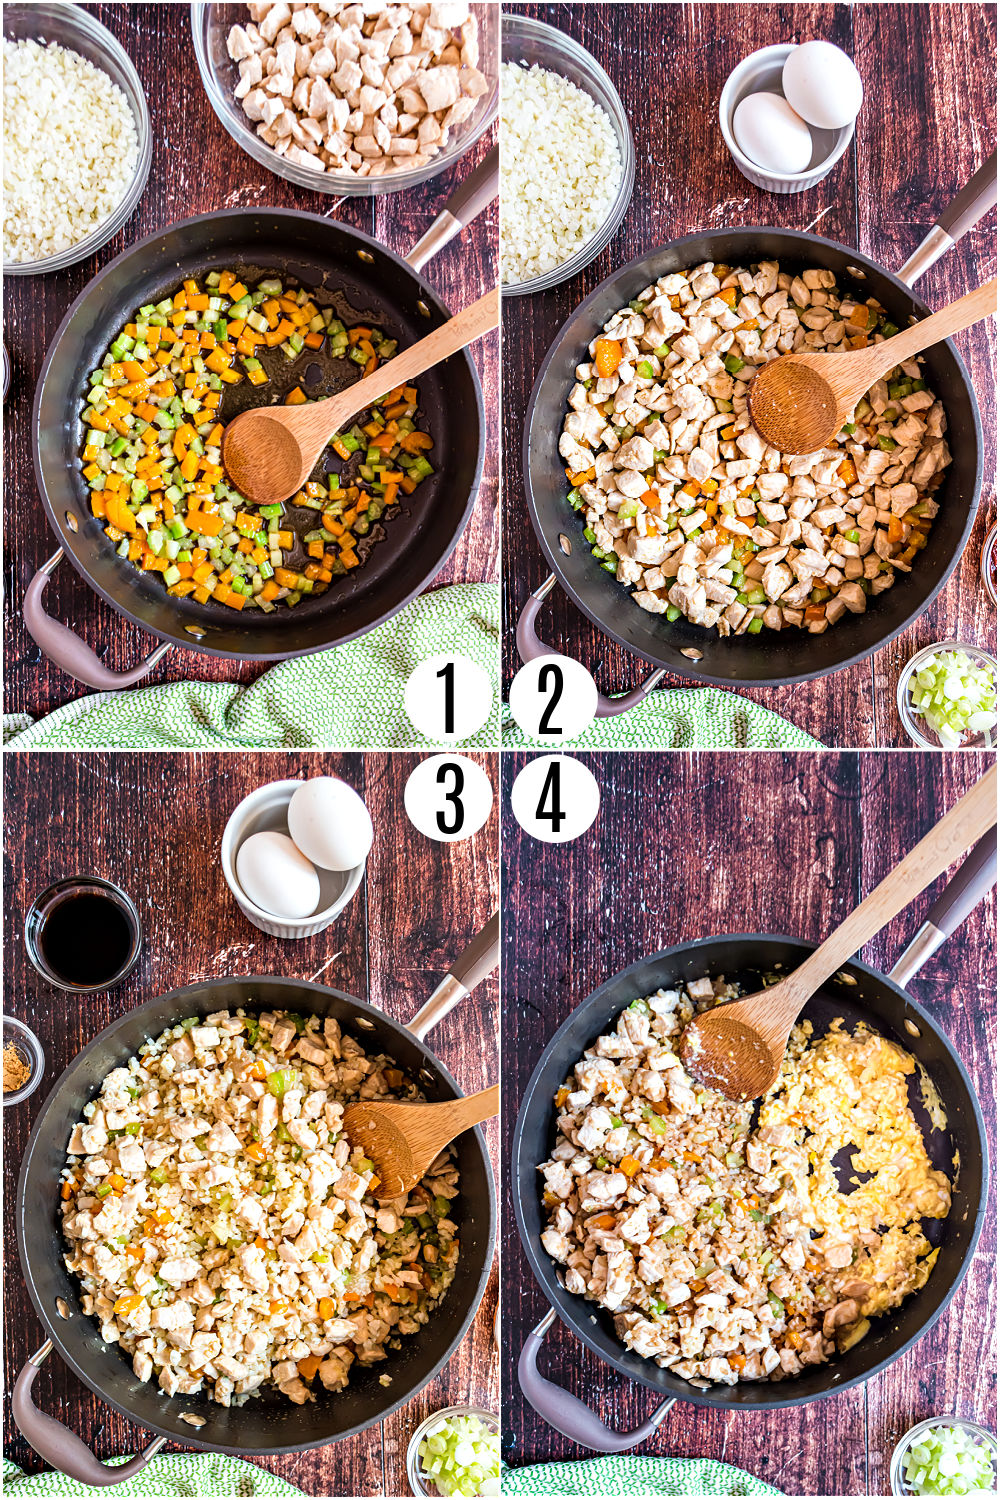 Step by step photos showing how to make cauliflower fried rice with chicken.